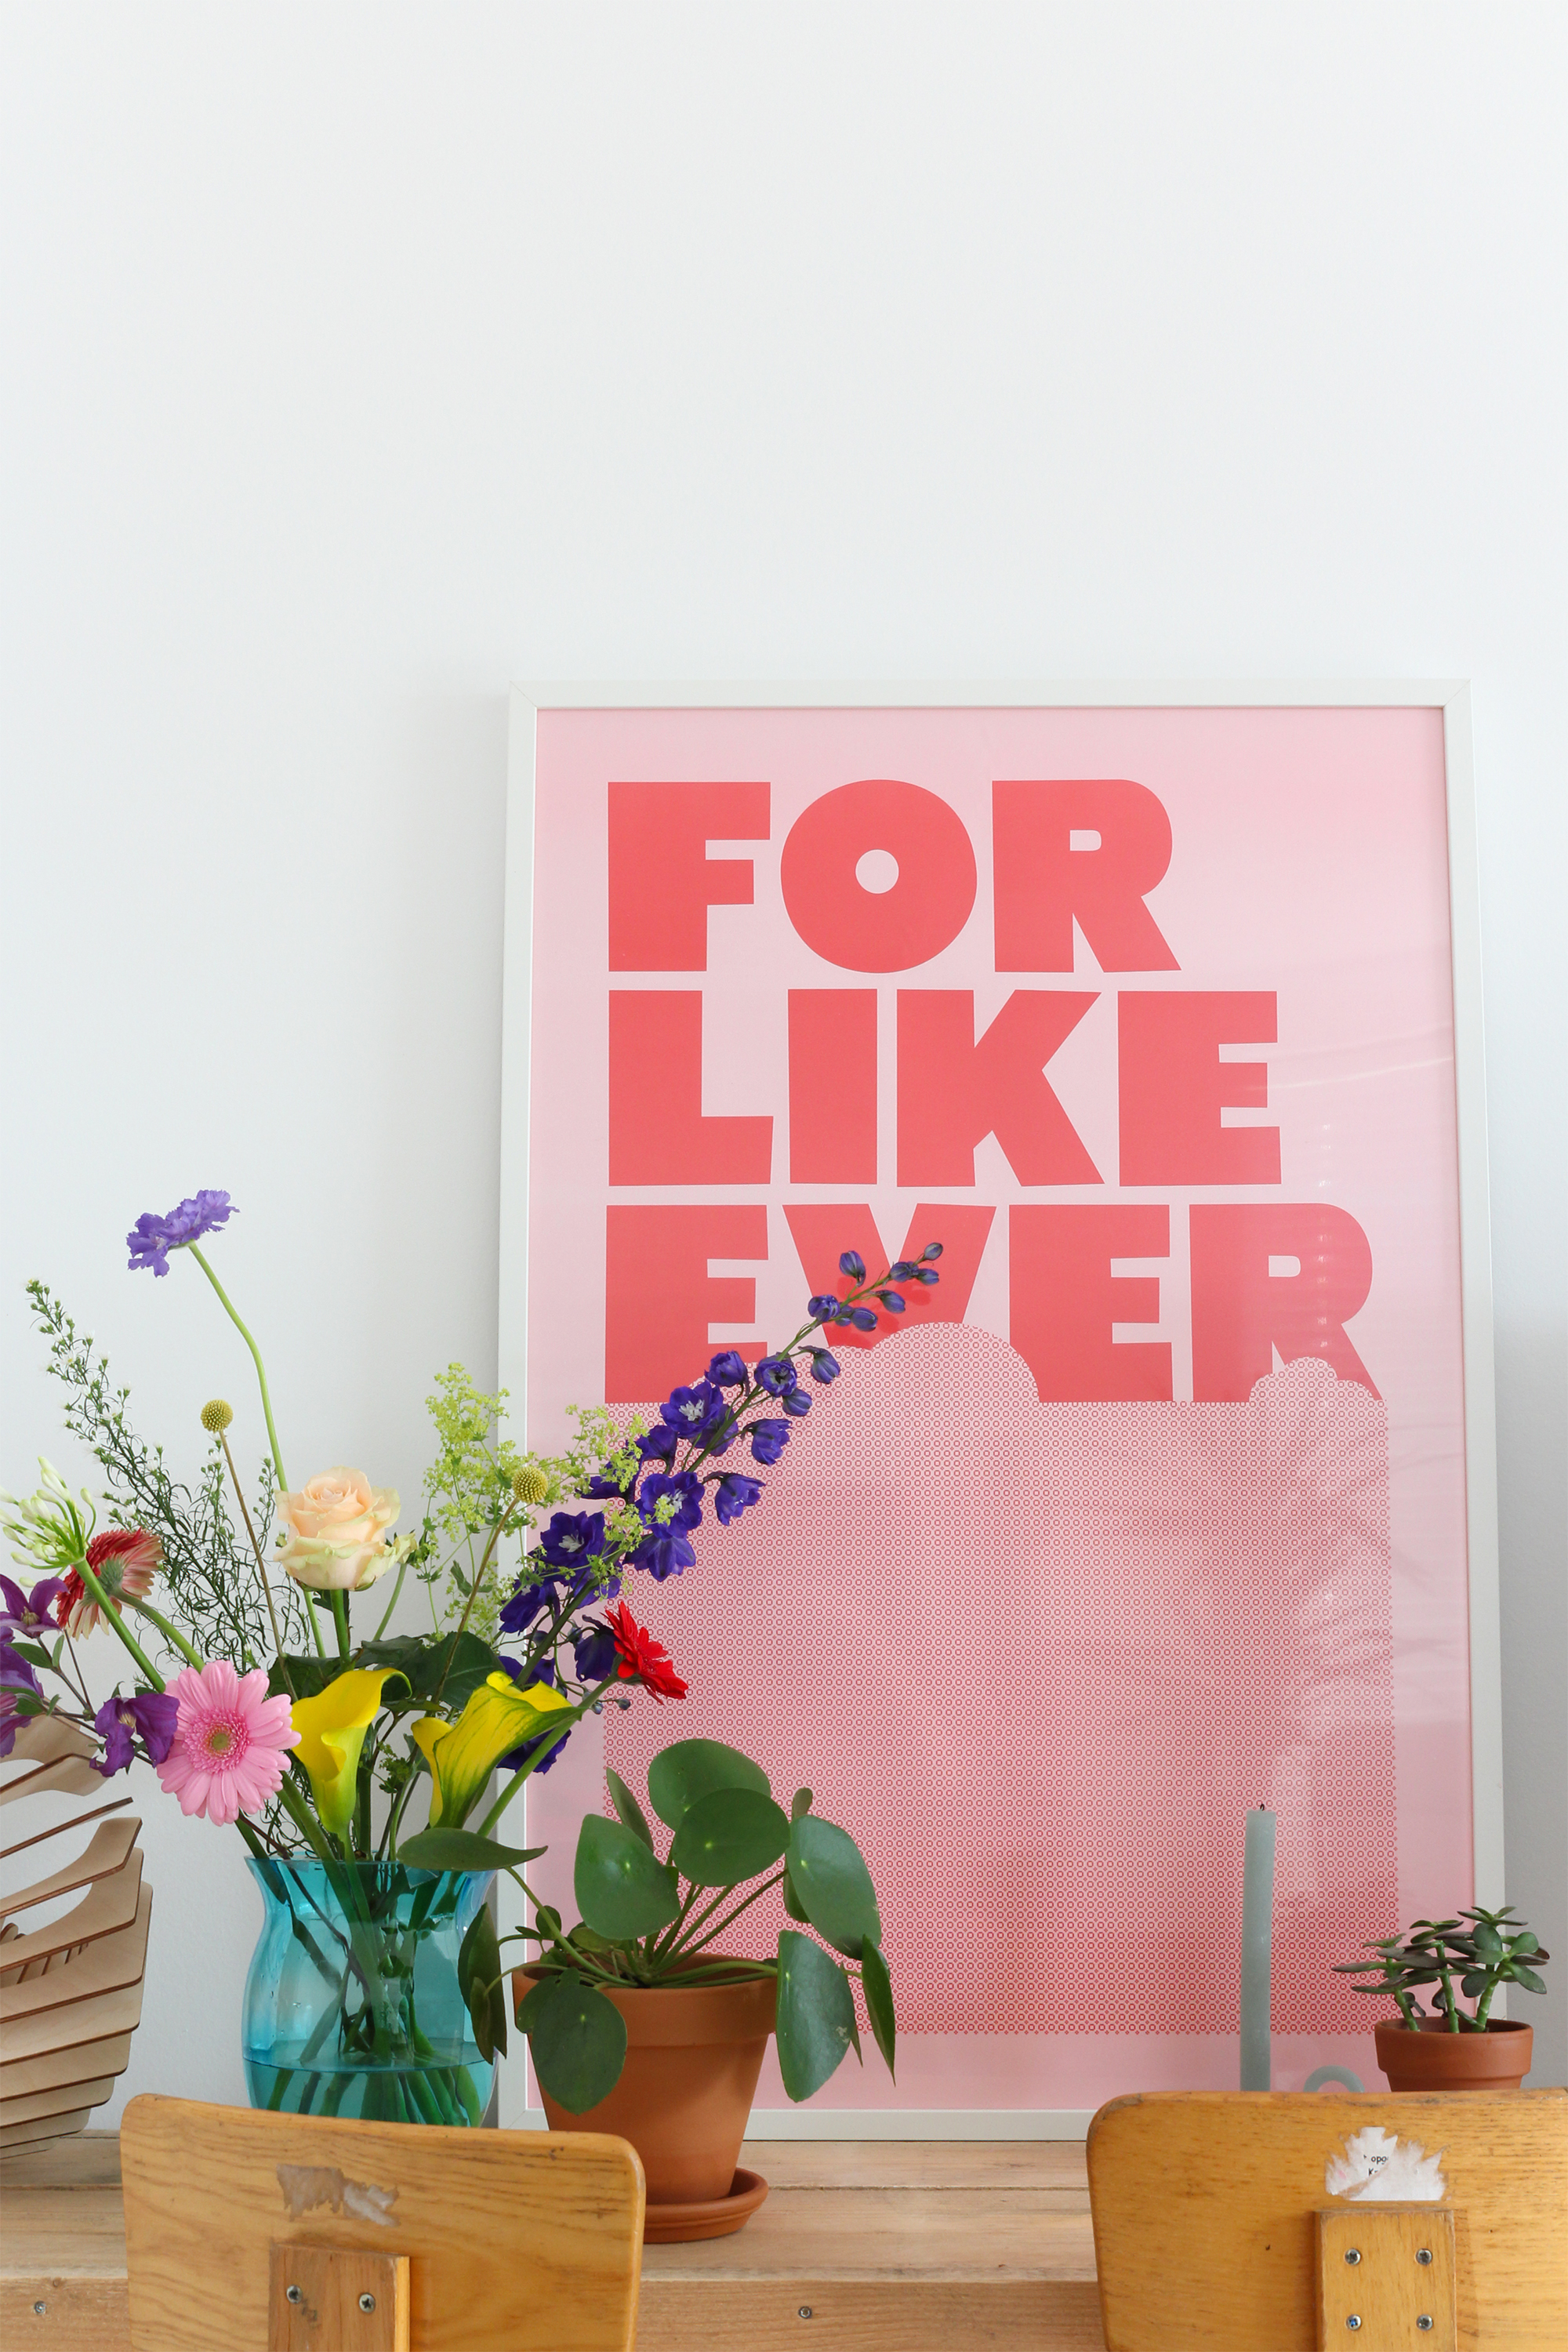 For like ever poster